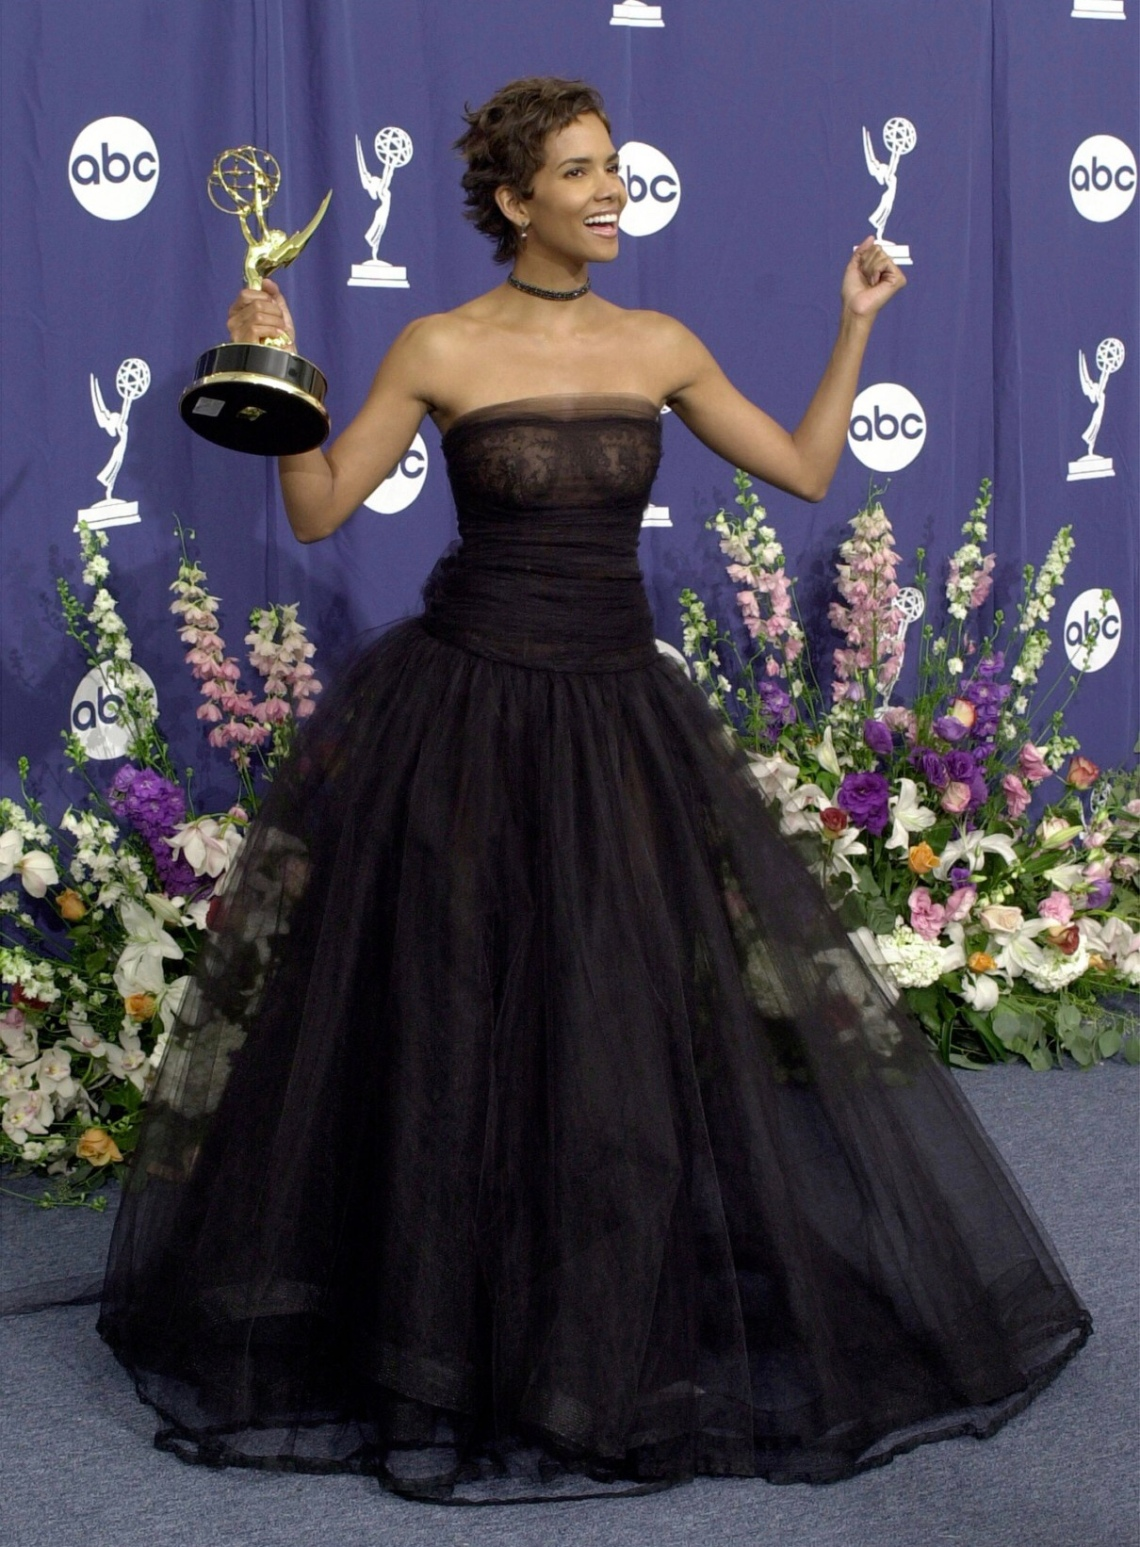 halle_berry_black_strapless_tulle_gown_on_sale_at_abc_awards copy